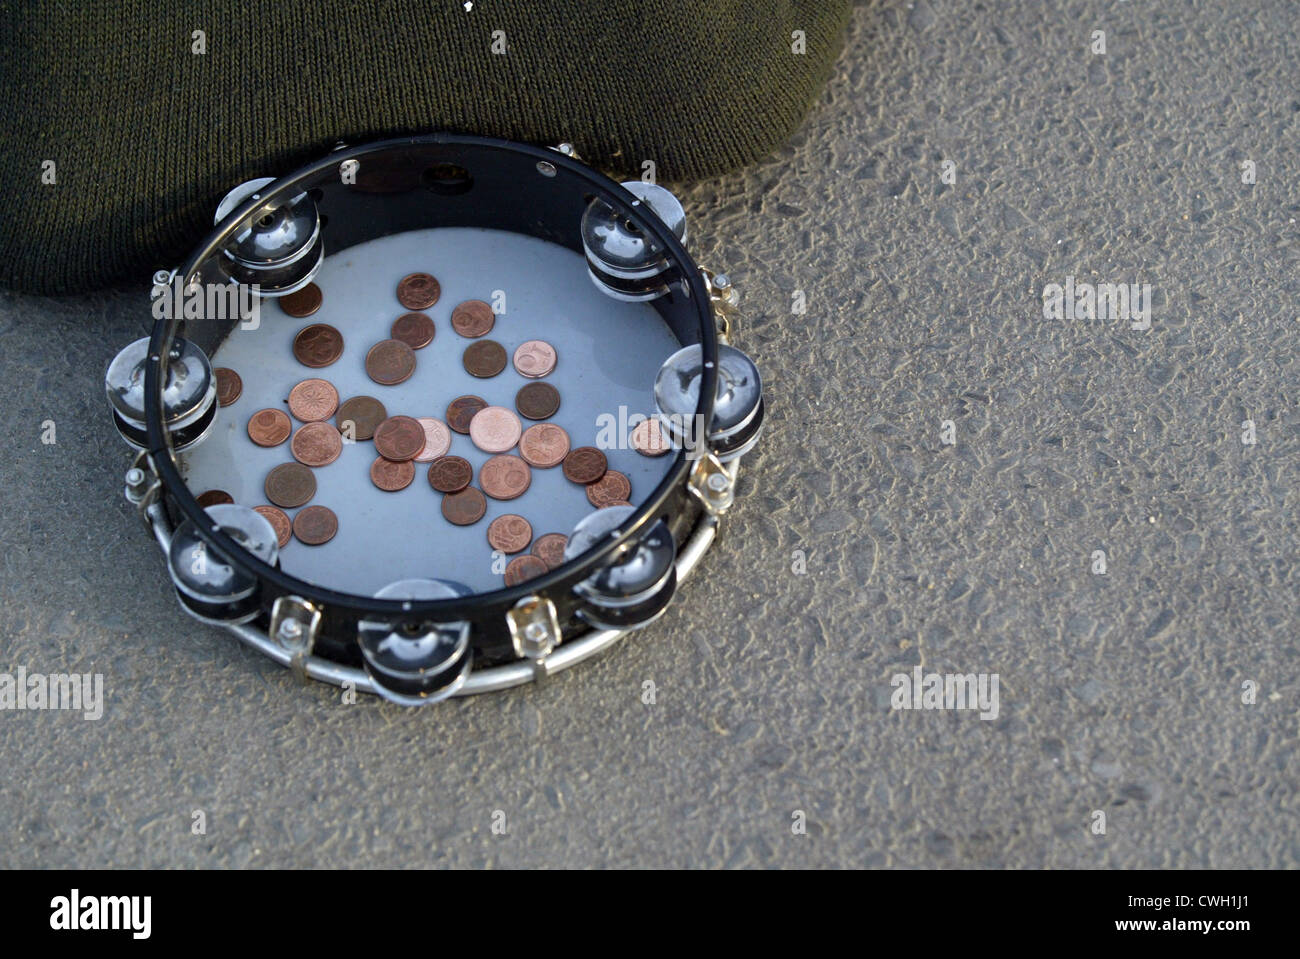 Berlin, coins in a tambourine - Stock Image